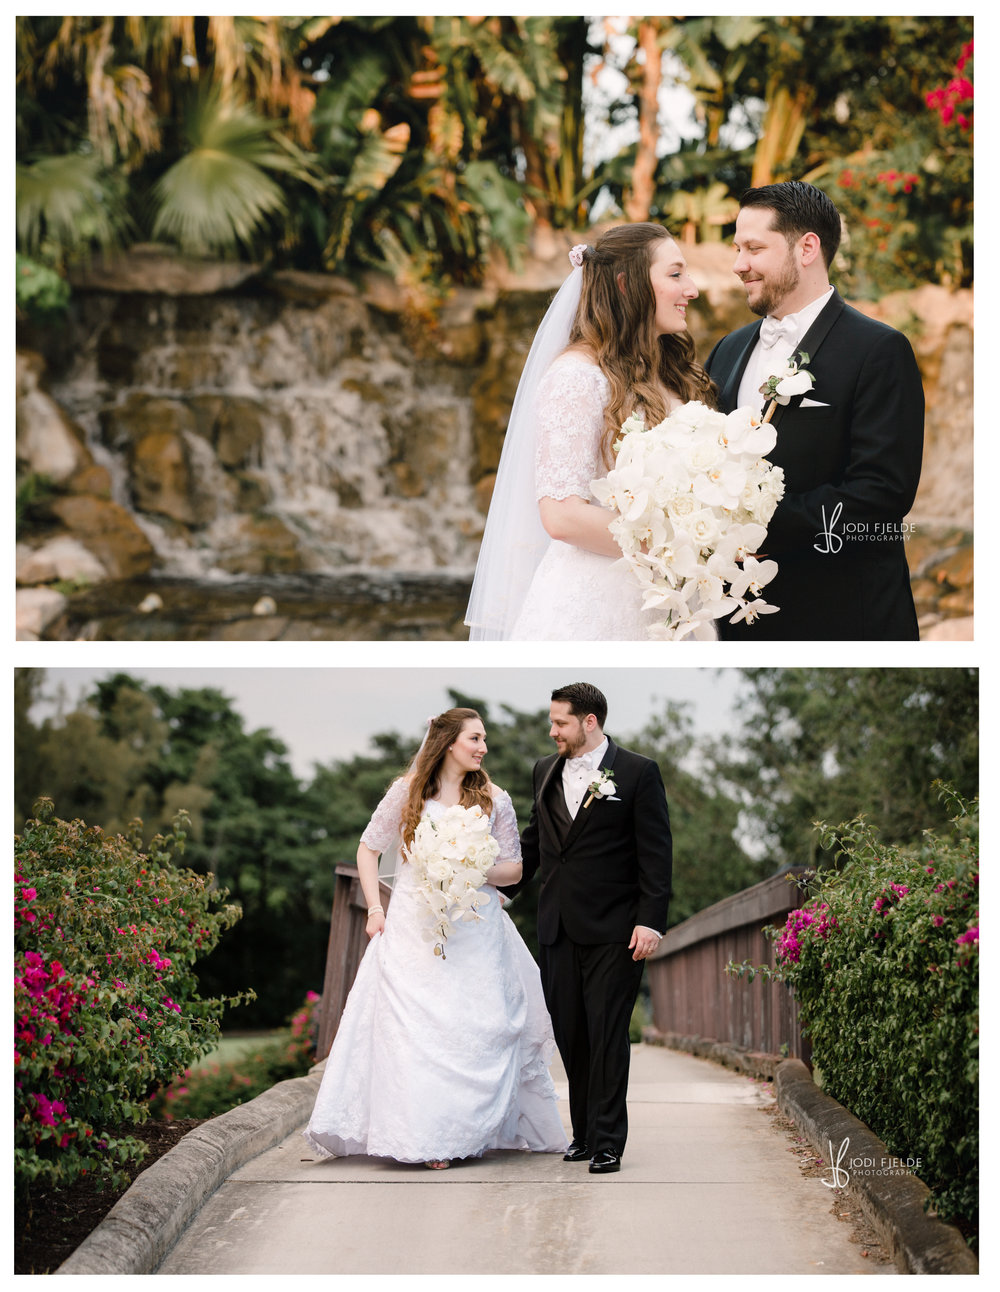 Deer_Creek_Country_Club_Wedding_Jodi_Fjelde_Photography_Andrea_Jason_14.jpg